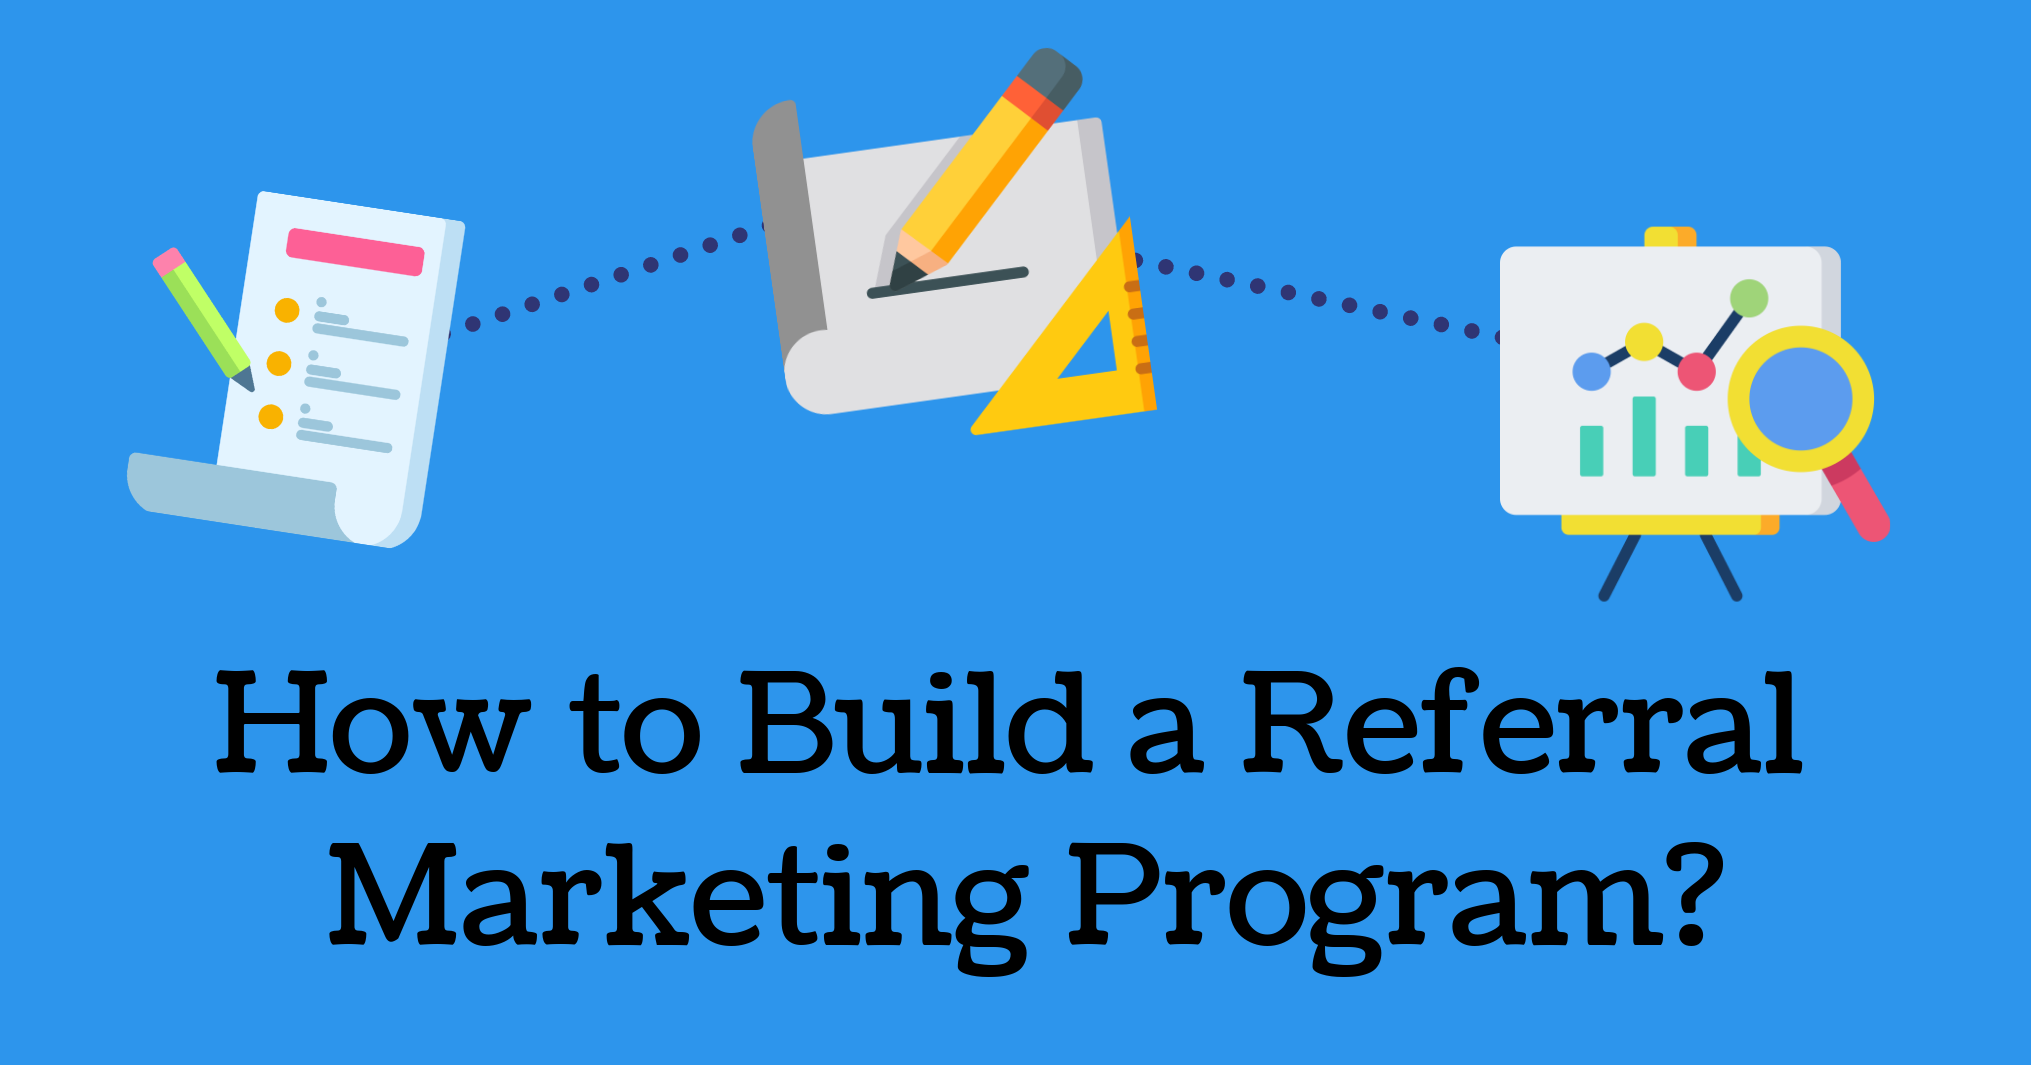 How to setup a referral program